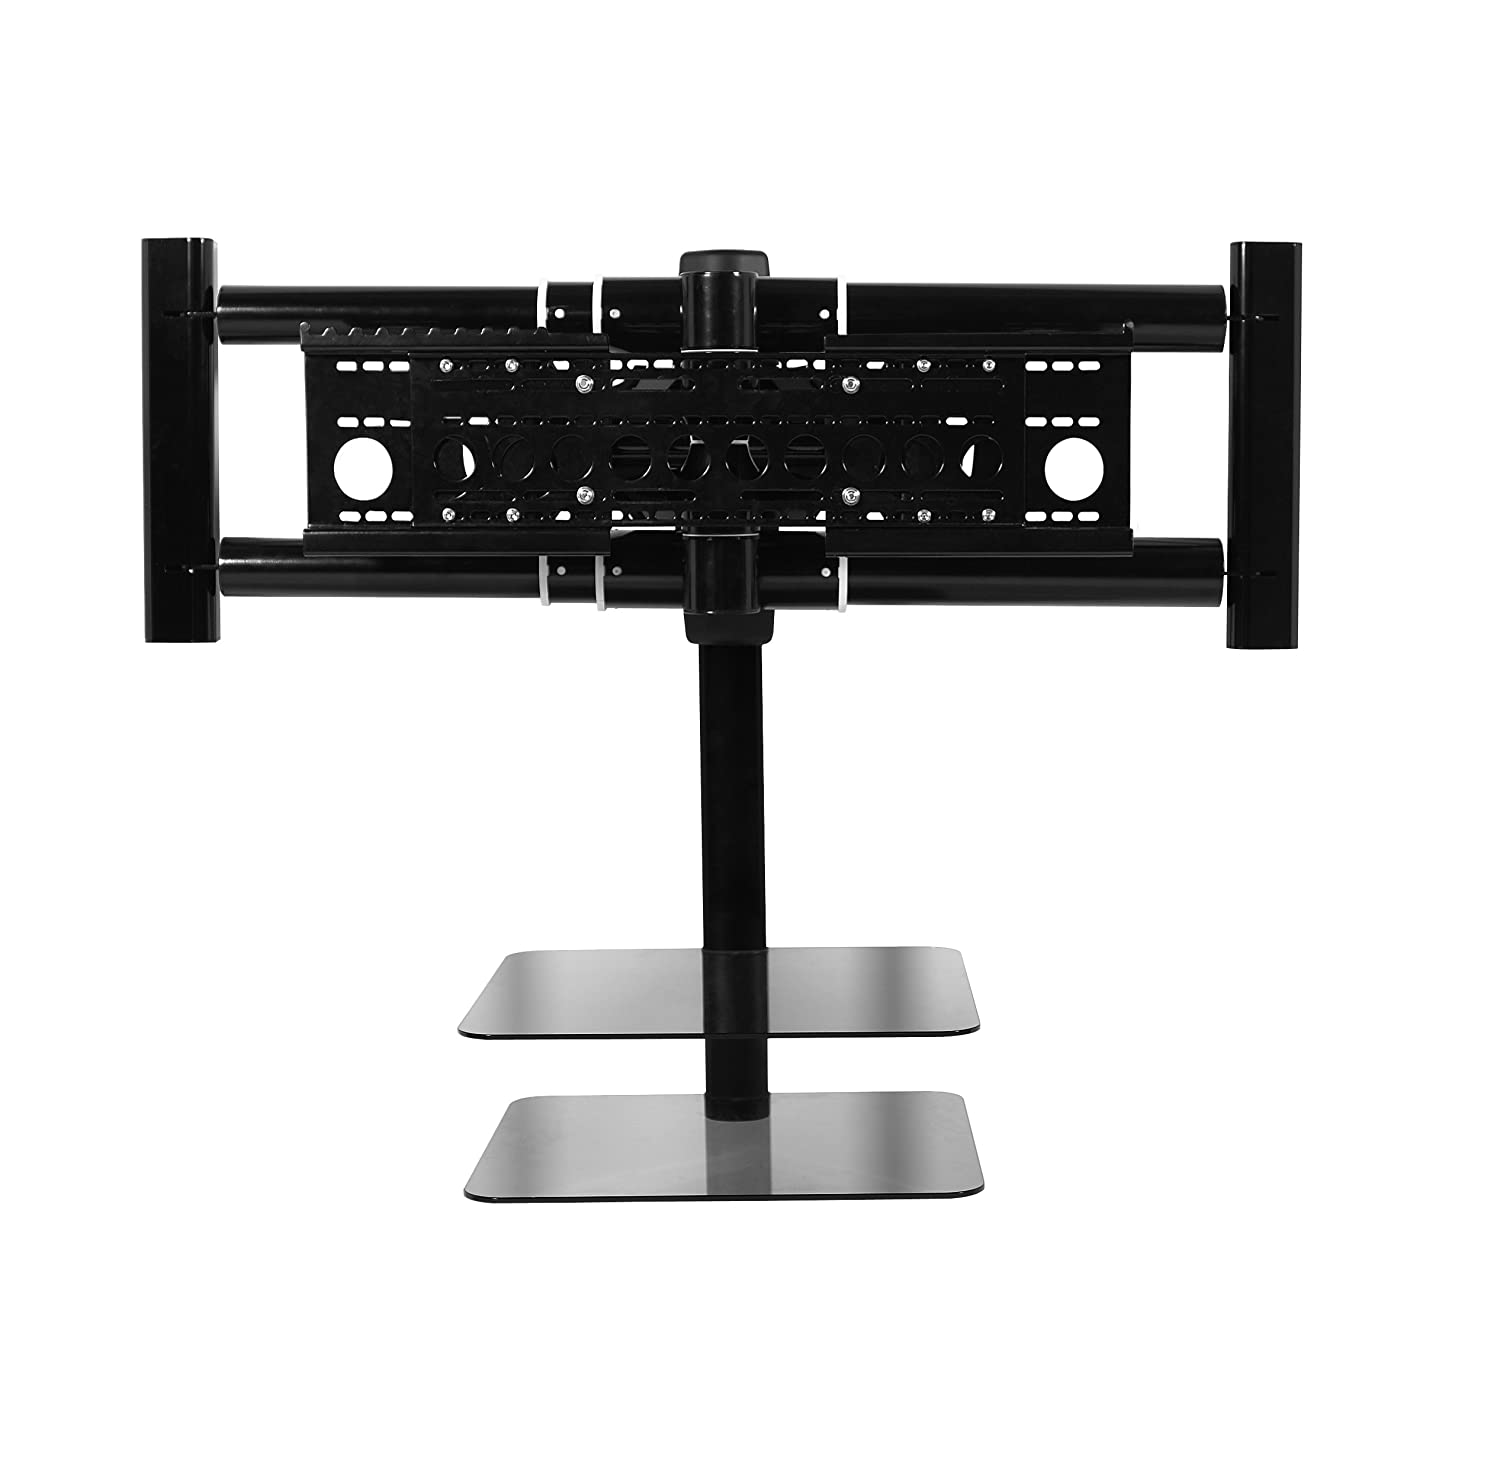 Avf Nxl4502pb Support Mural Orientable Inclinable Et Coulissant  # Meuble Tv Colonne Orientable